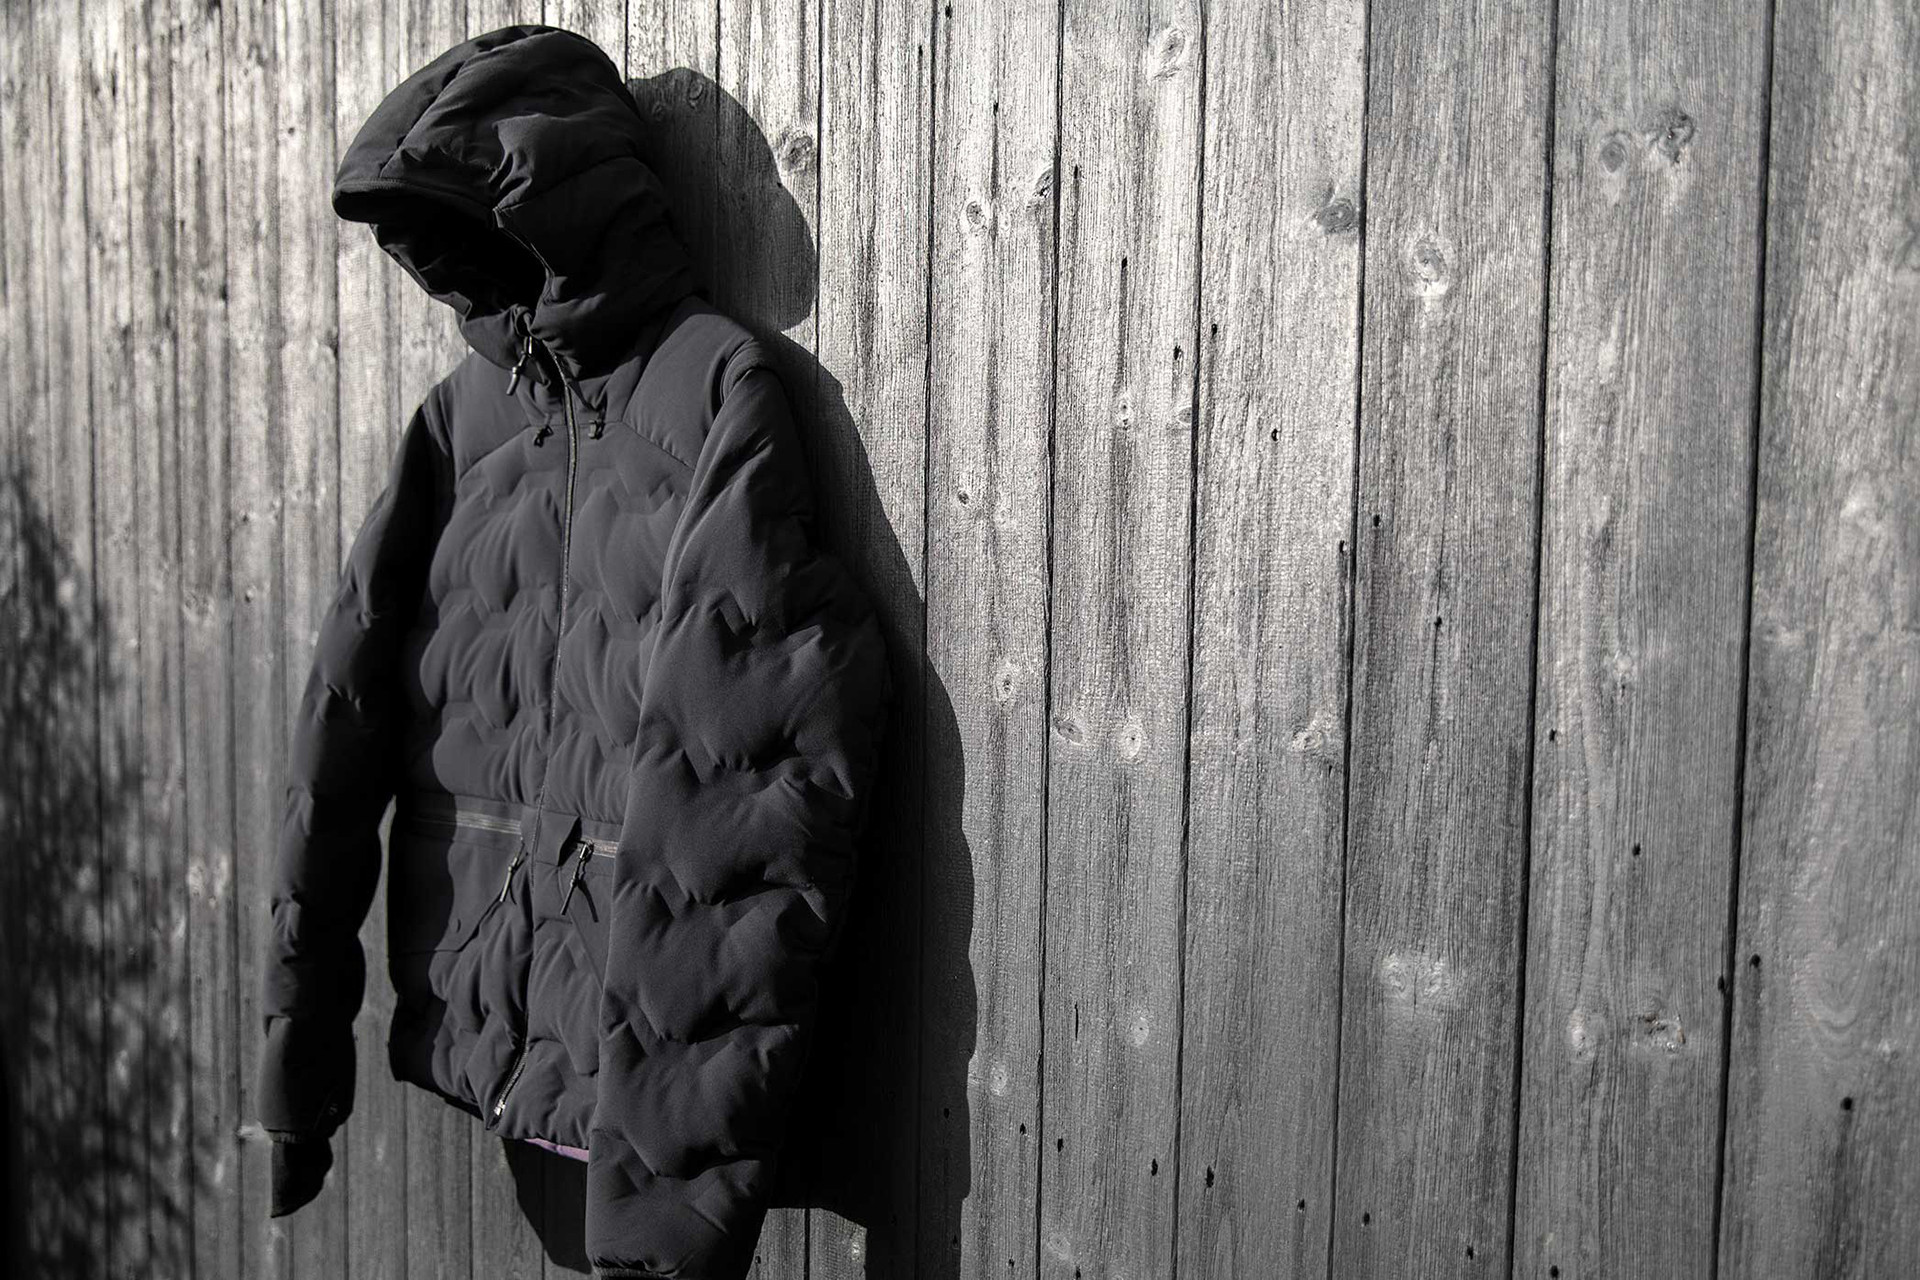 7L jacket from AW20 collection